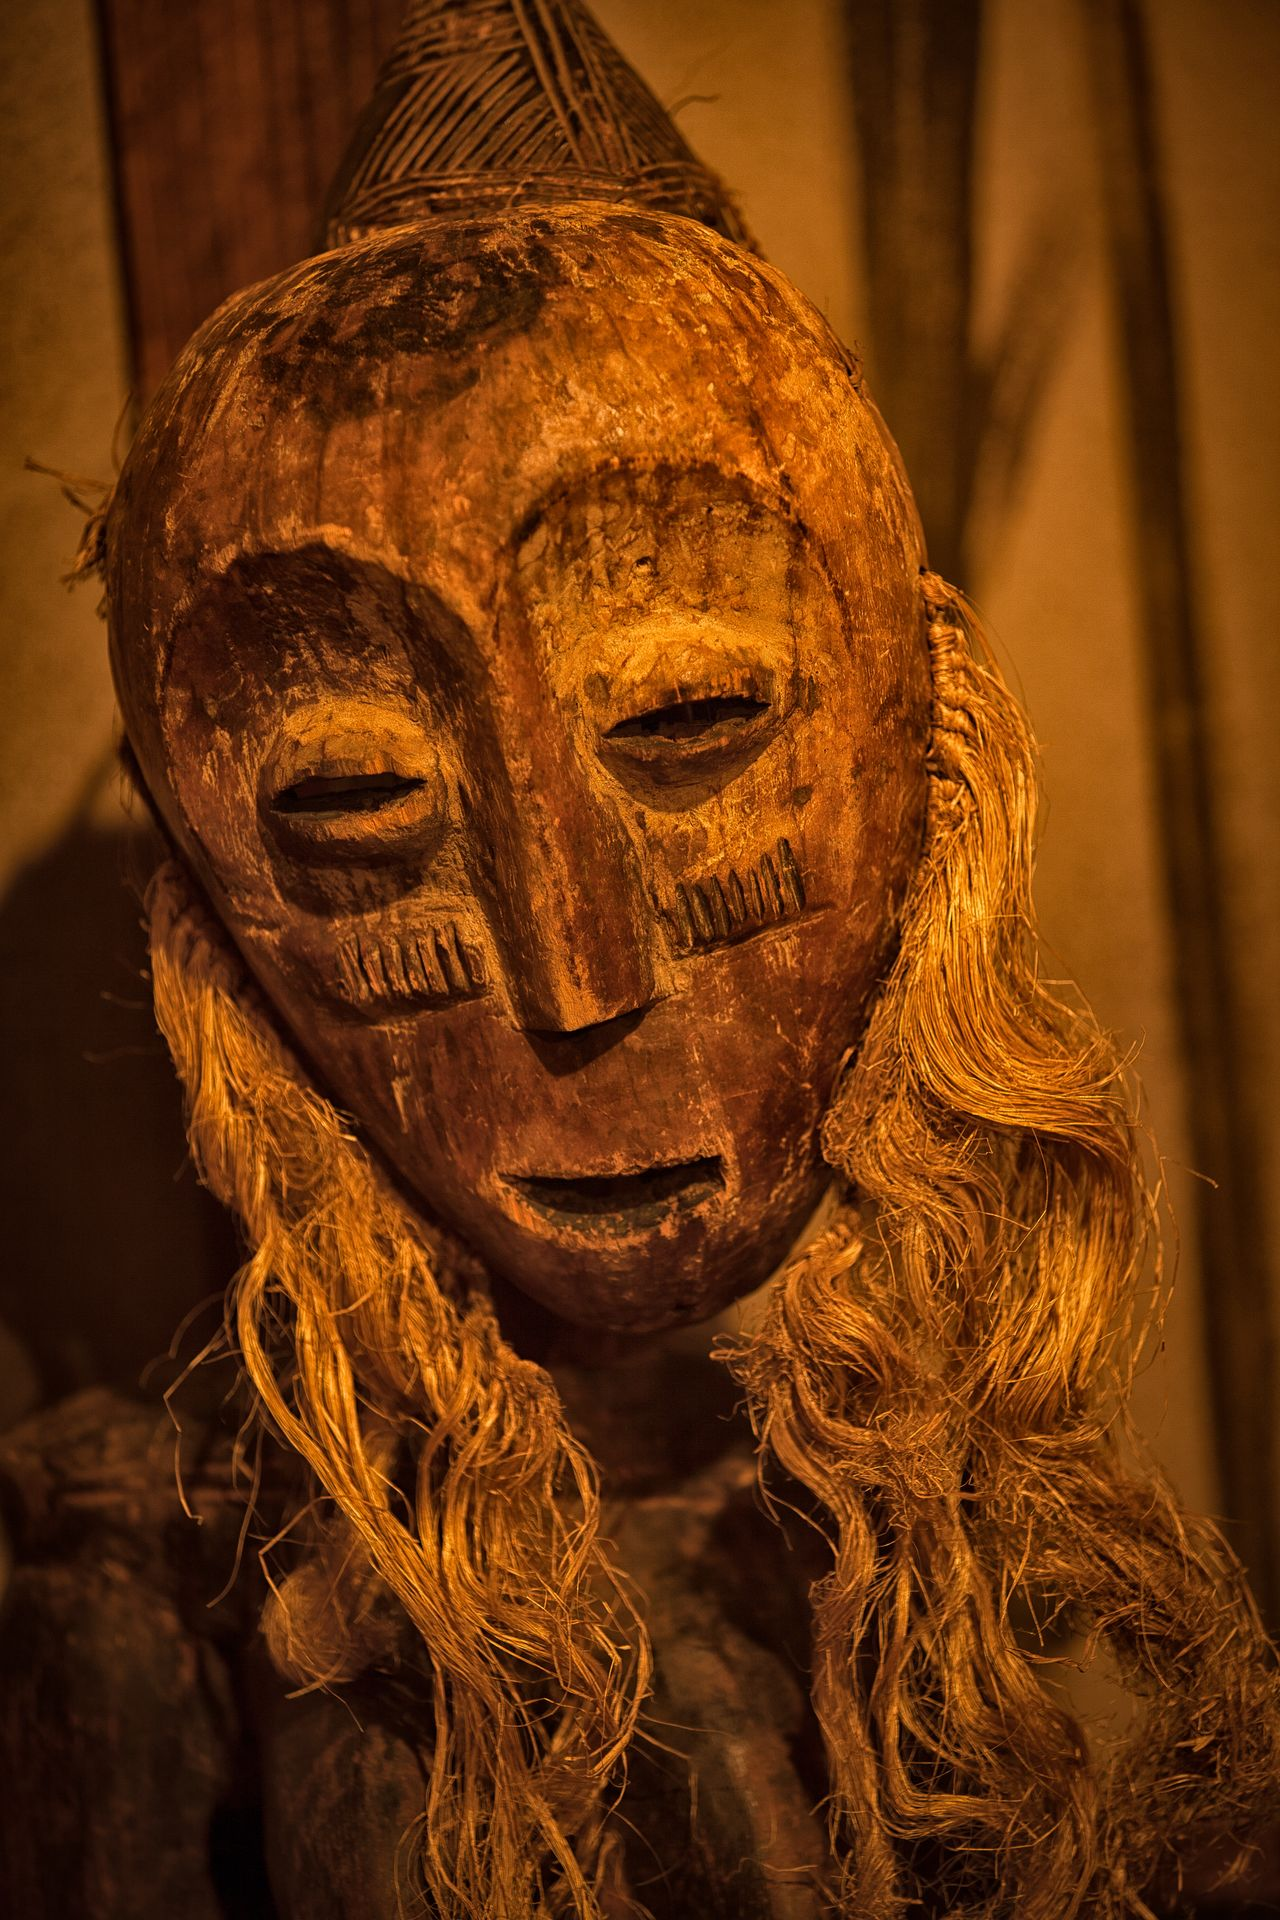 Voodoo Escape Room - Voodoo Face